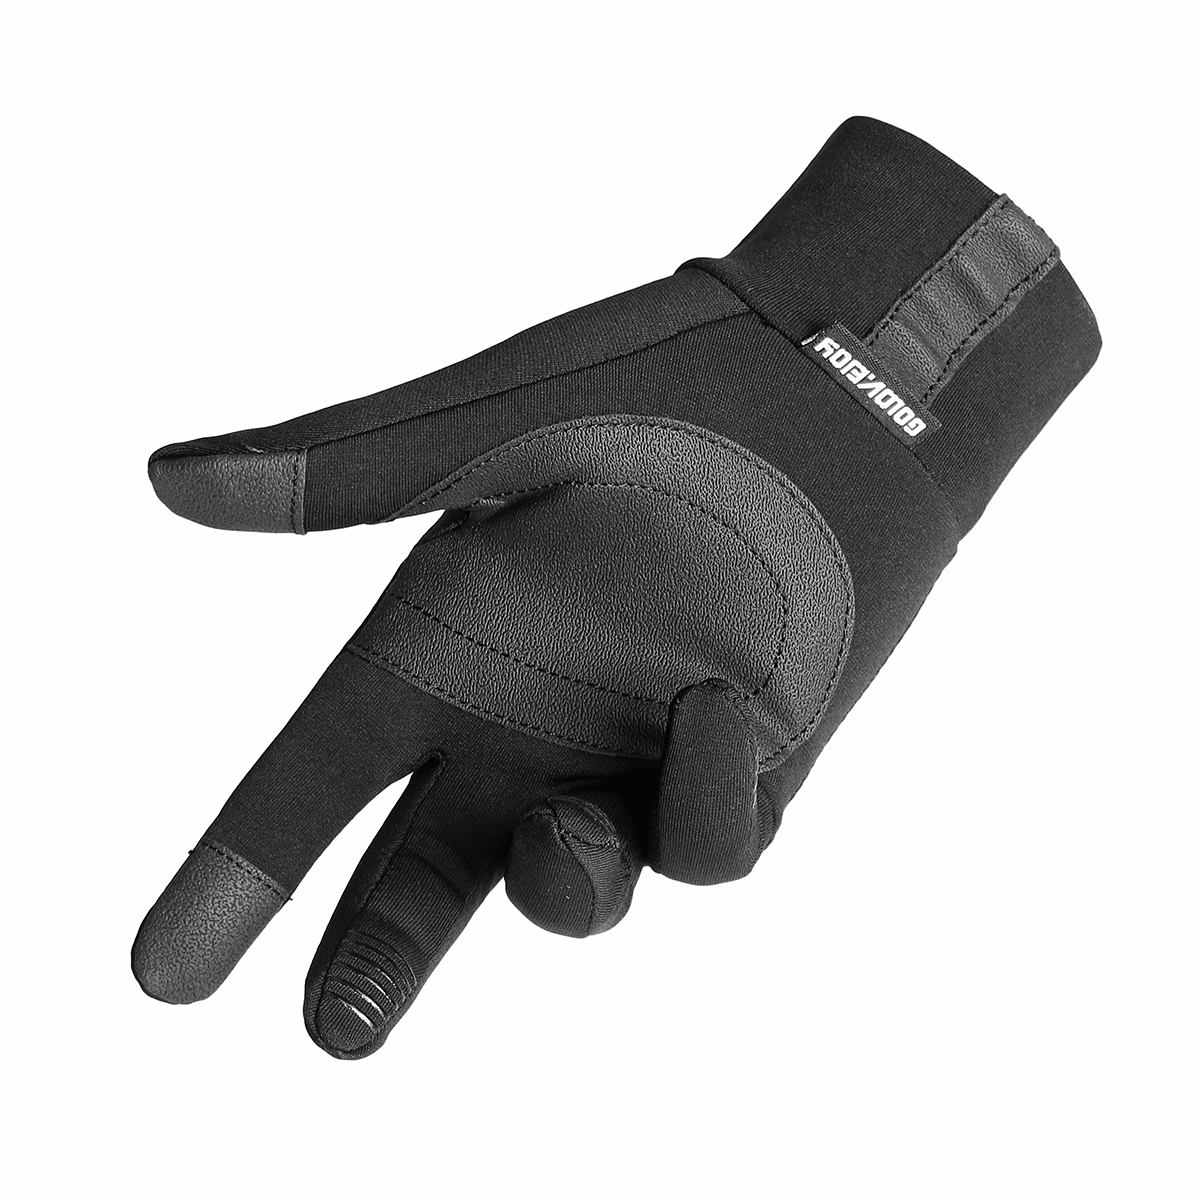 Motocycle Touch Screen Winter Gloves Thermal Warm Velvet Lined Anti Skid Racing Cycling